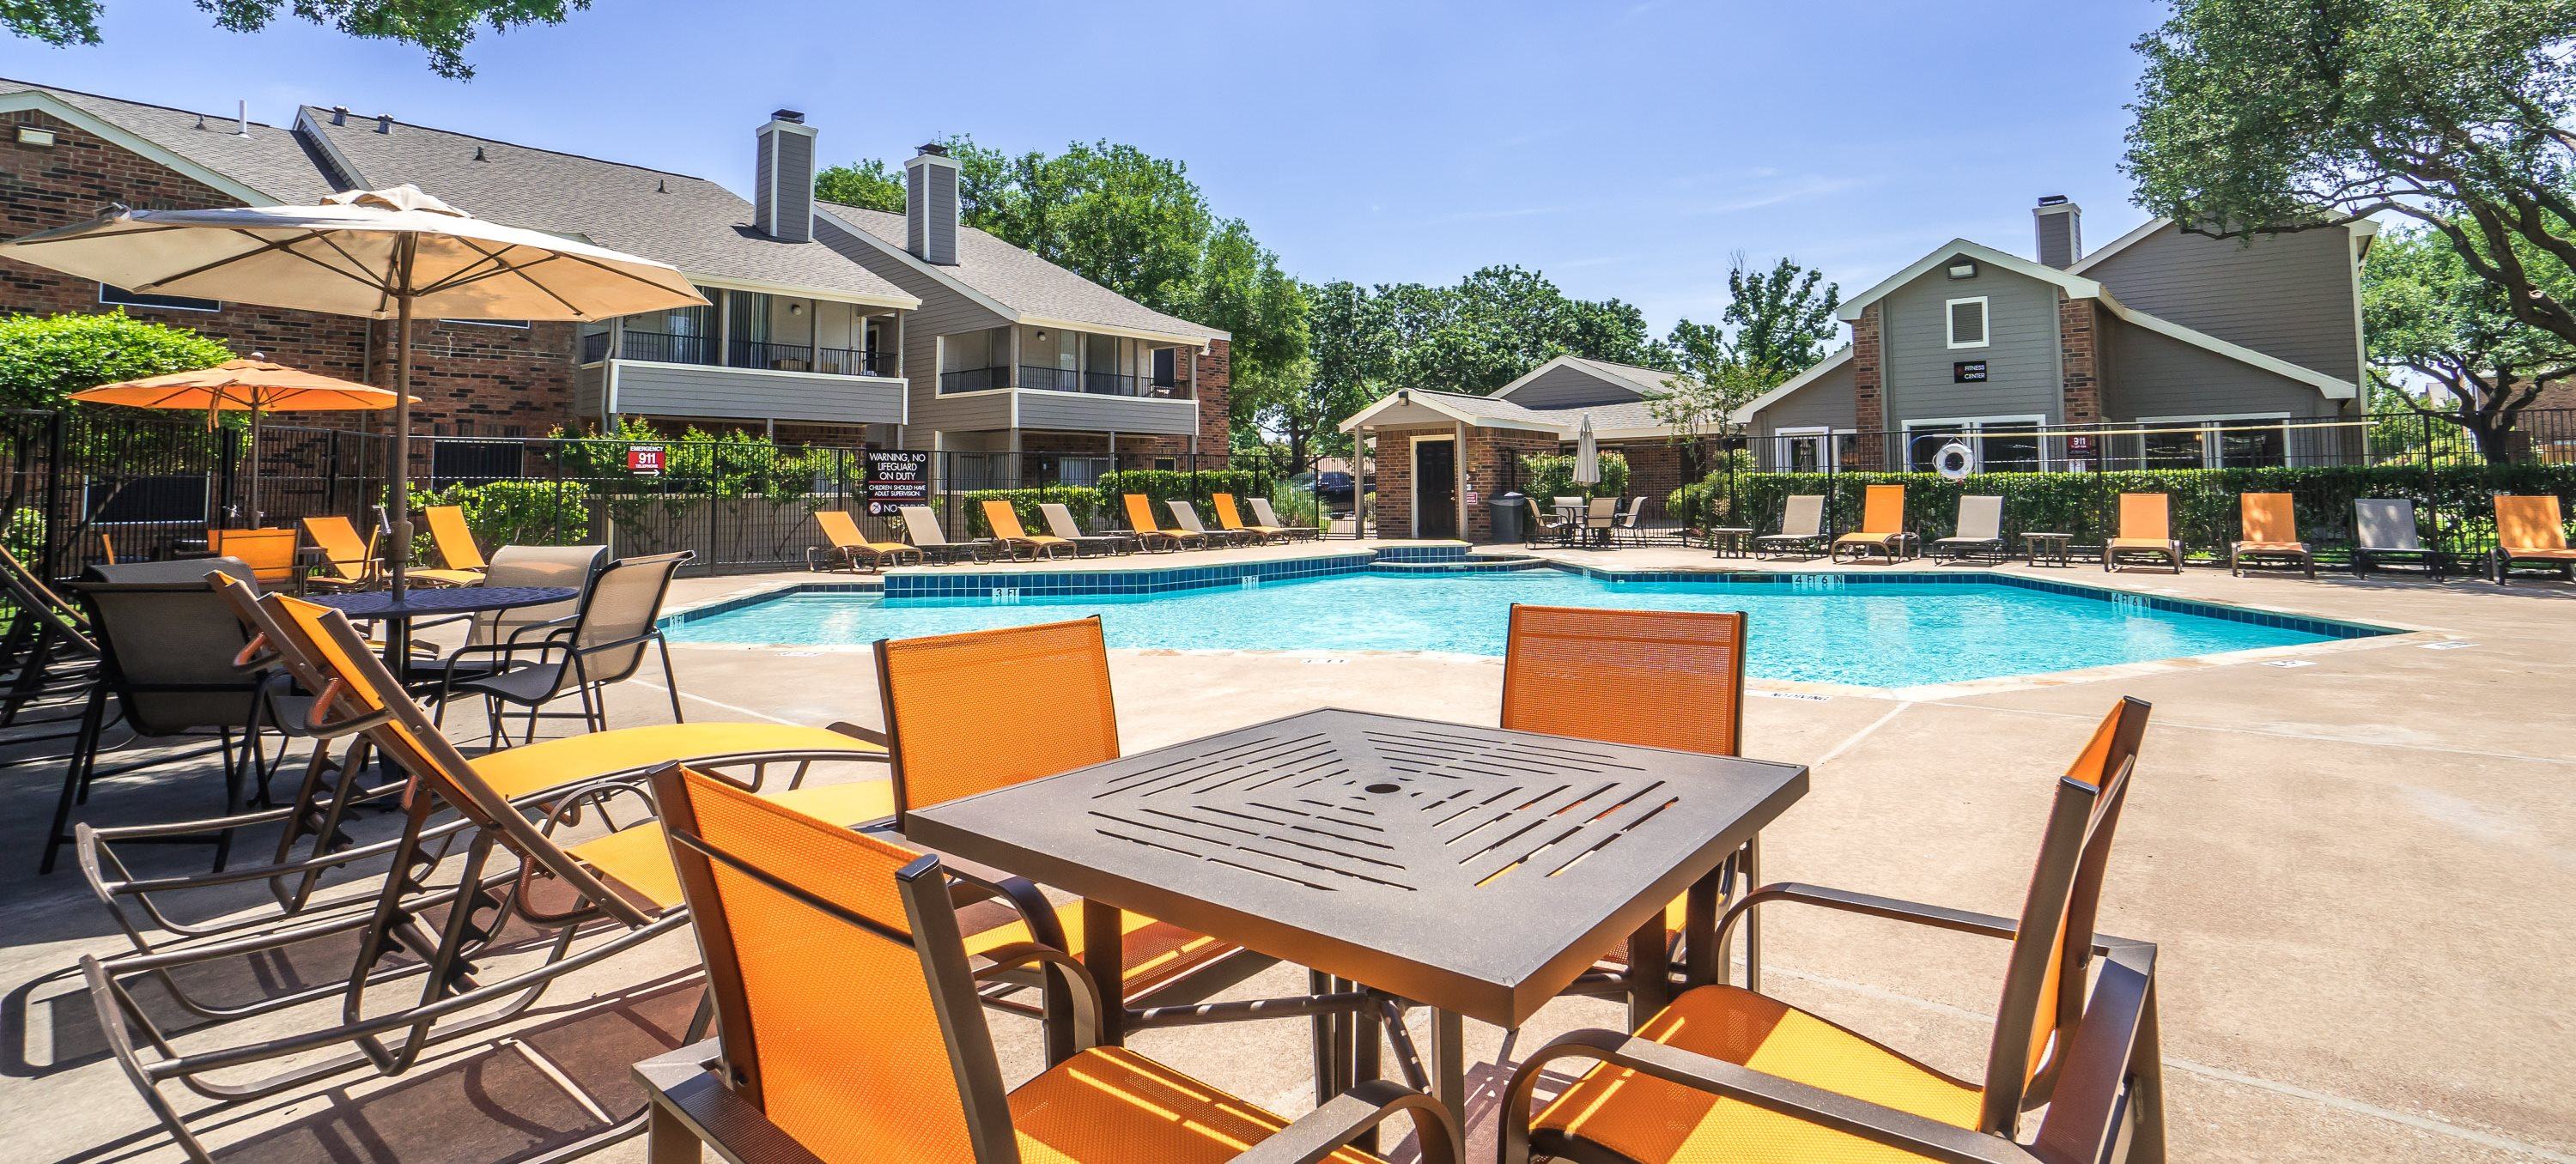 Wood Meadow Apartments | Apartments in North Richland Hills, TX